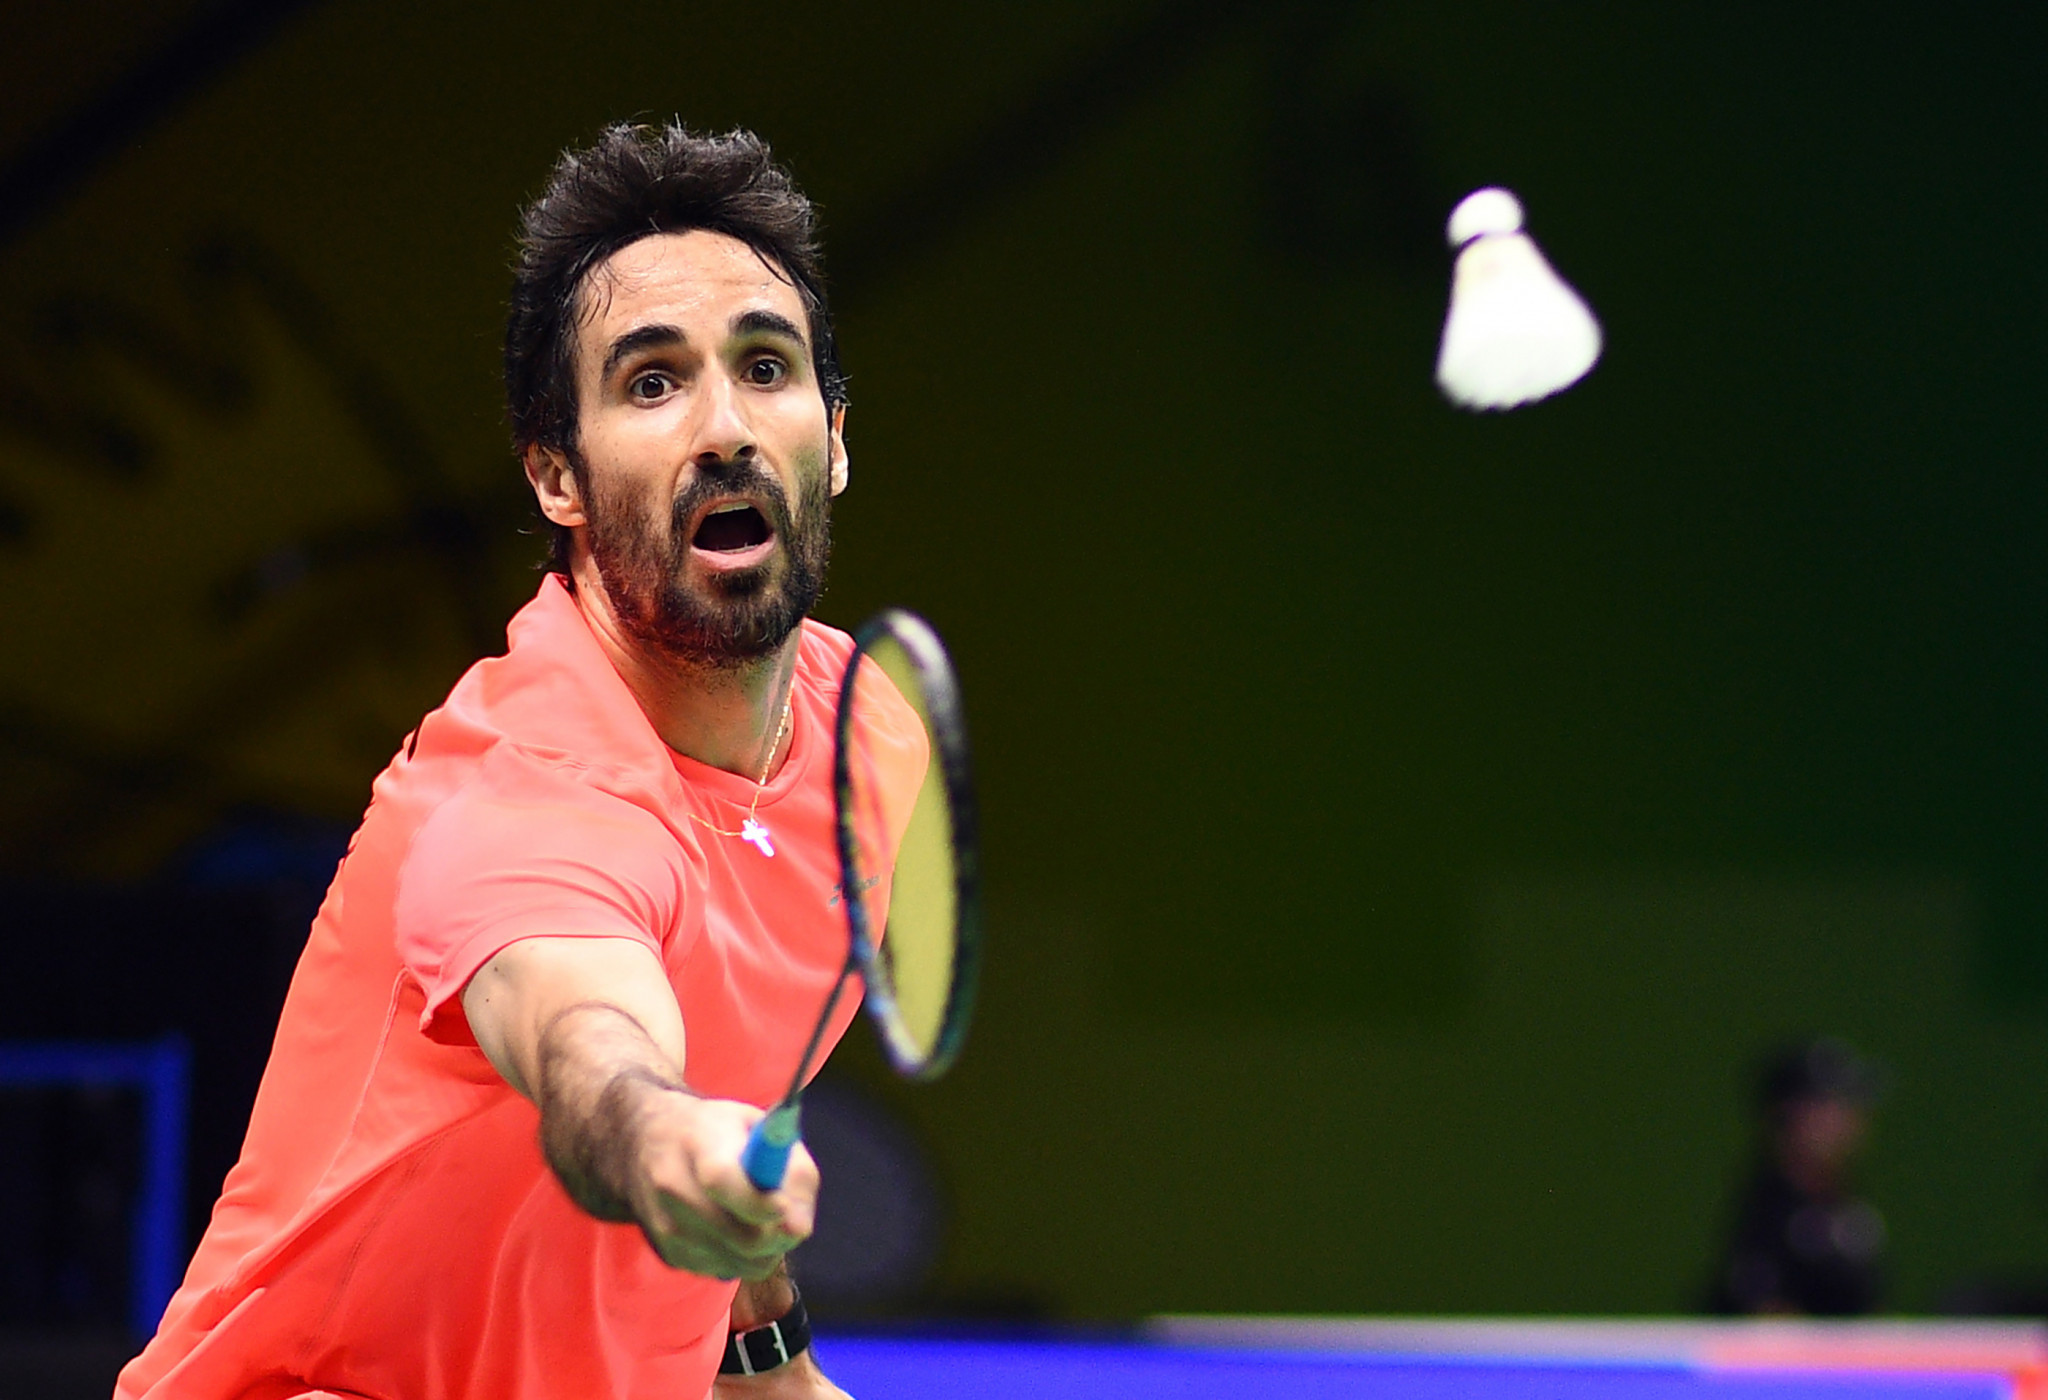 Pablo Abián beat Danylo Bosniuk in three games as Spain recorded a clean sweep versus Ukraine ©Getty Images